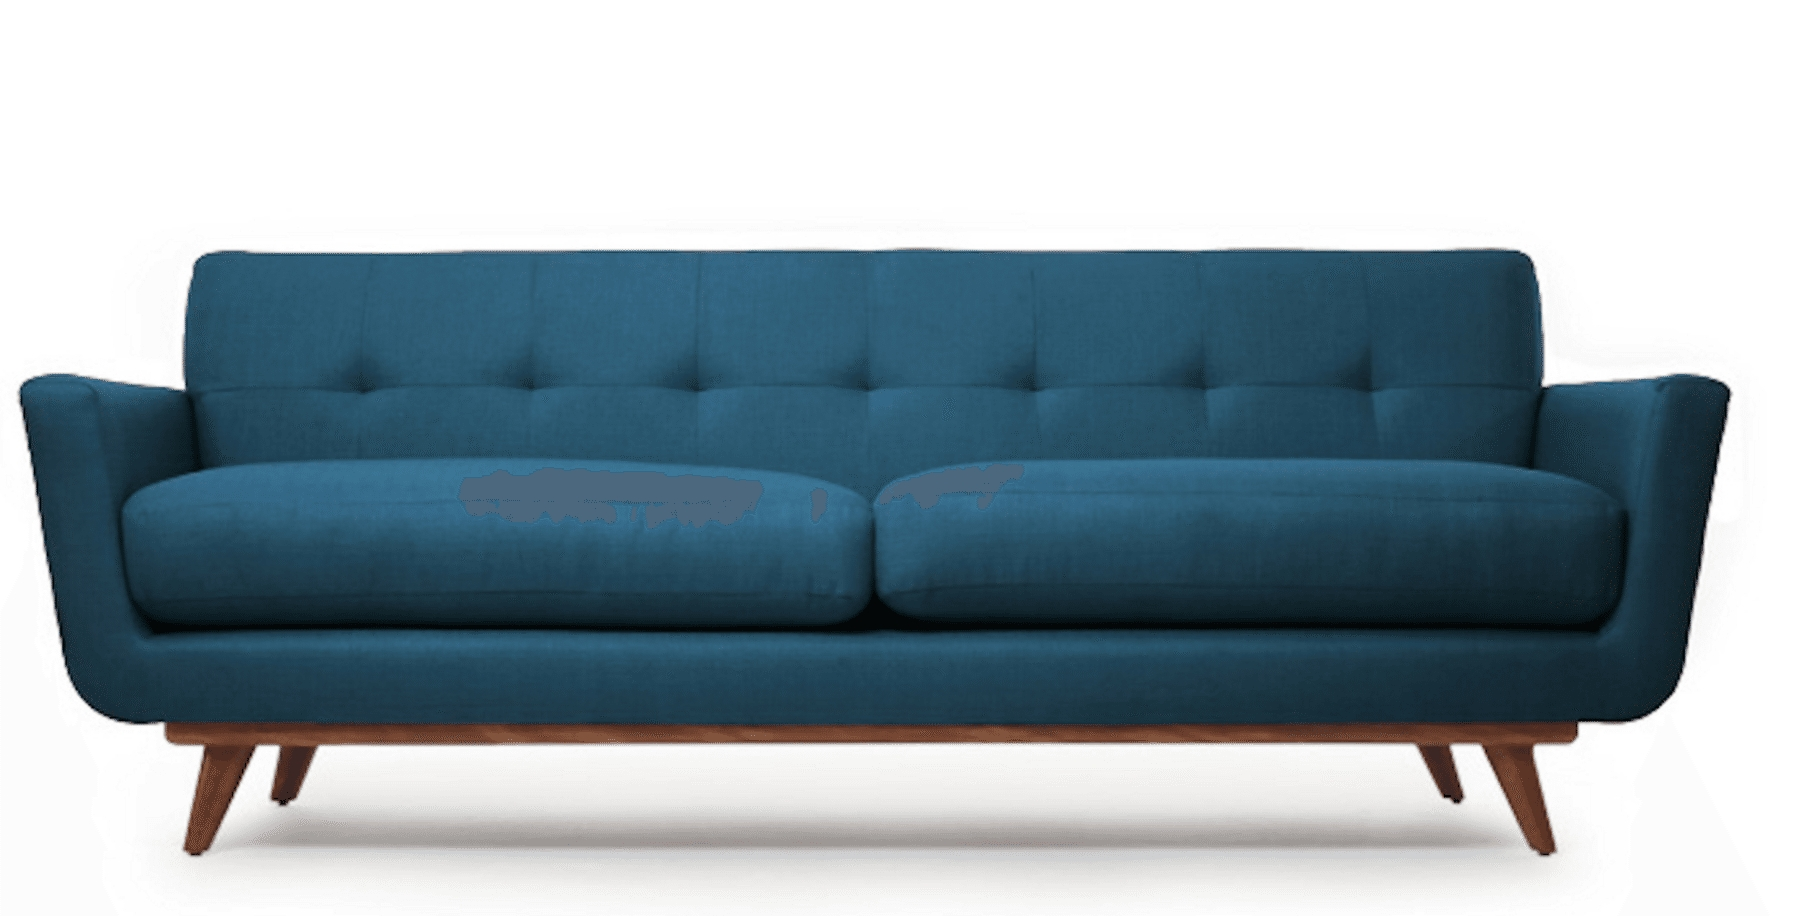 Sofas: Mid Century Settee | Mid Century Sofas | Cheap Mid Century Intended For Cheap Retro Sofas (Image 9 of 20)